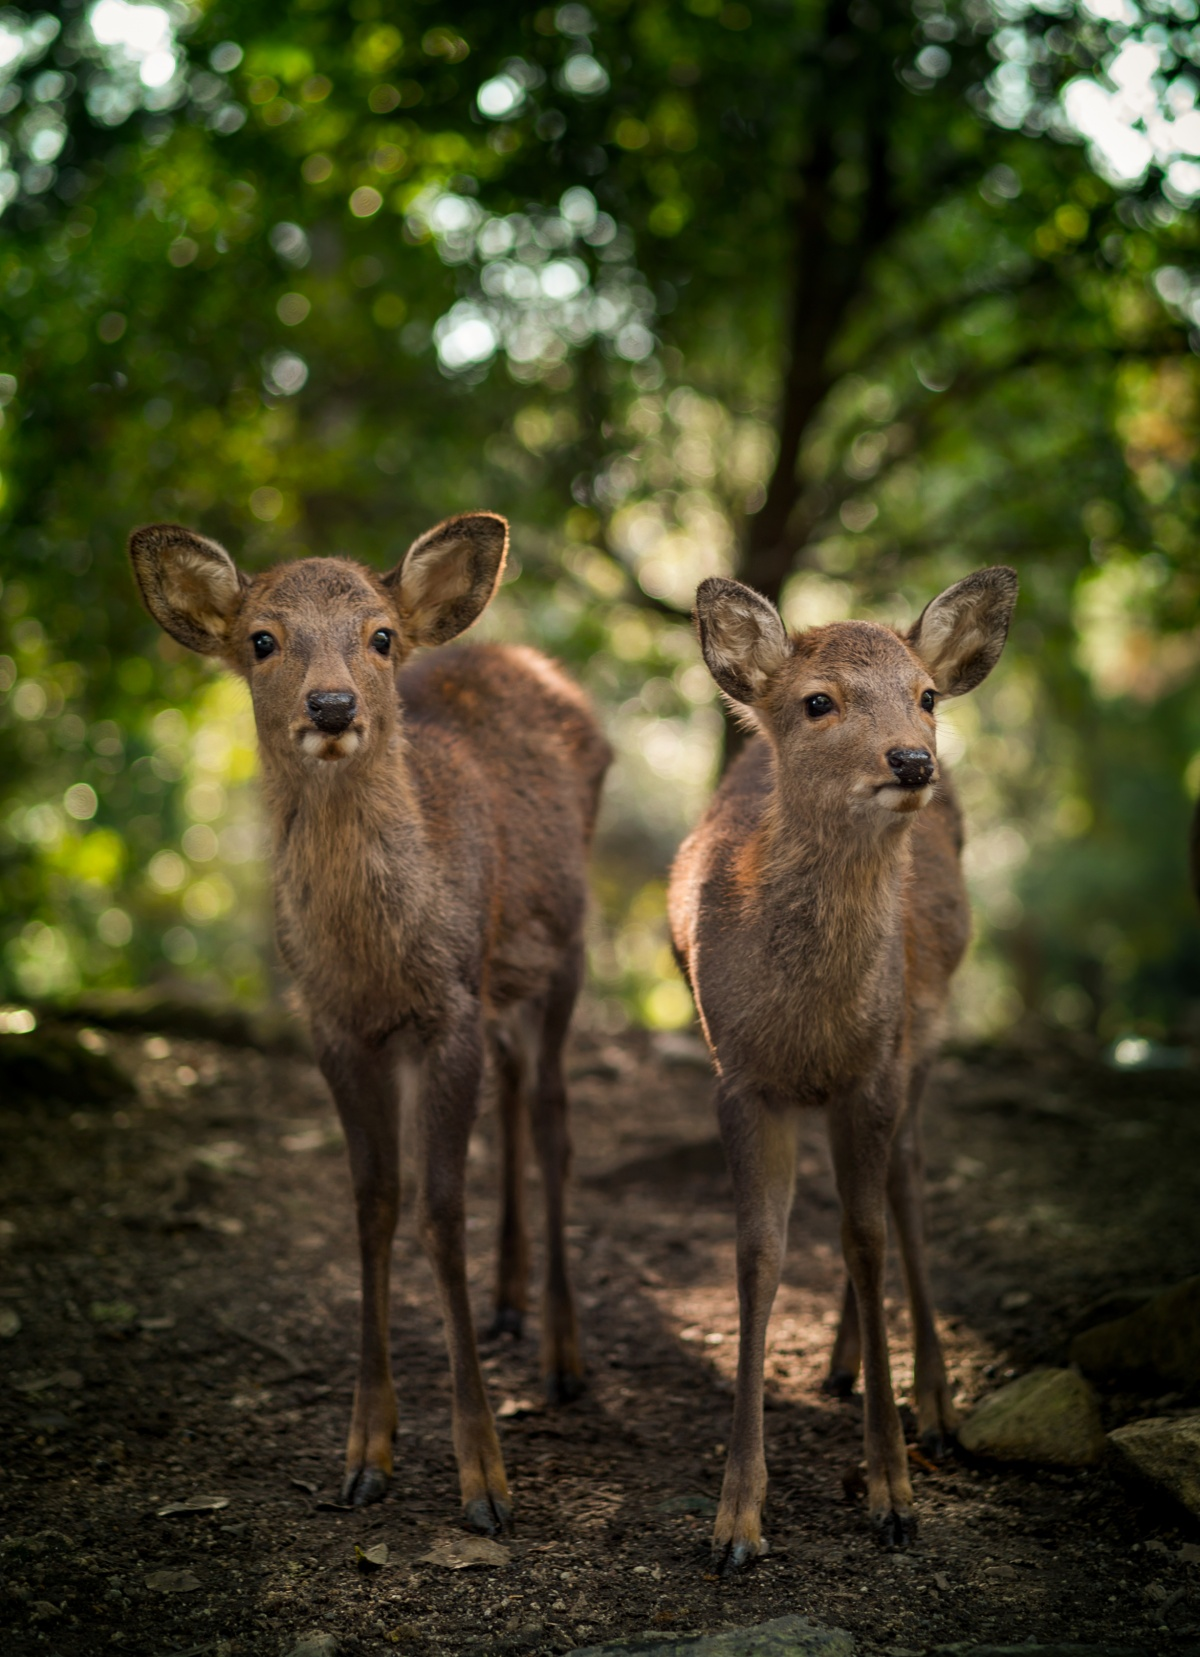 Photo of cute deer siblings in Nara, Japan